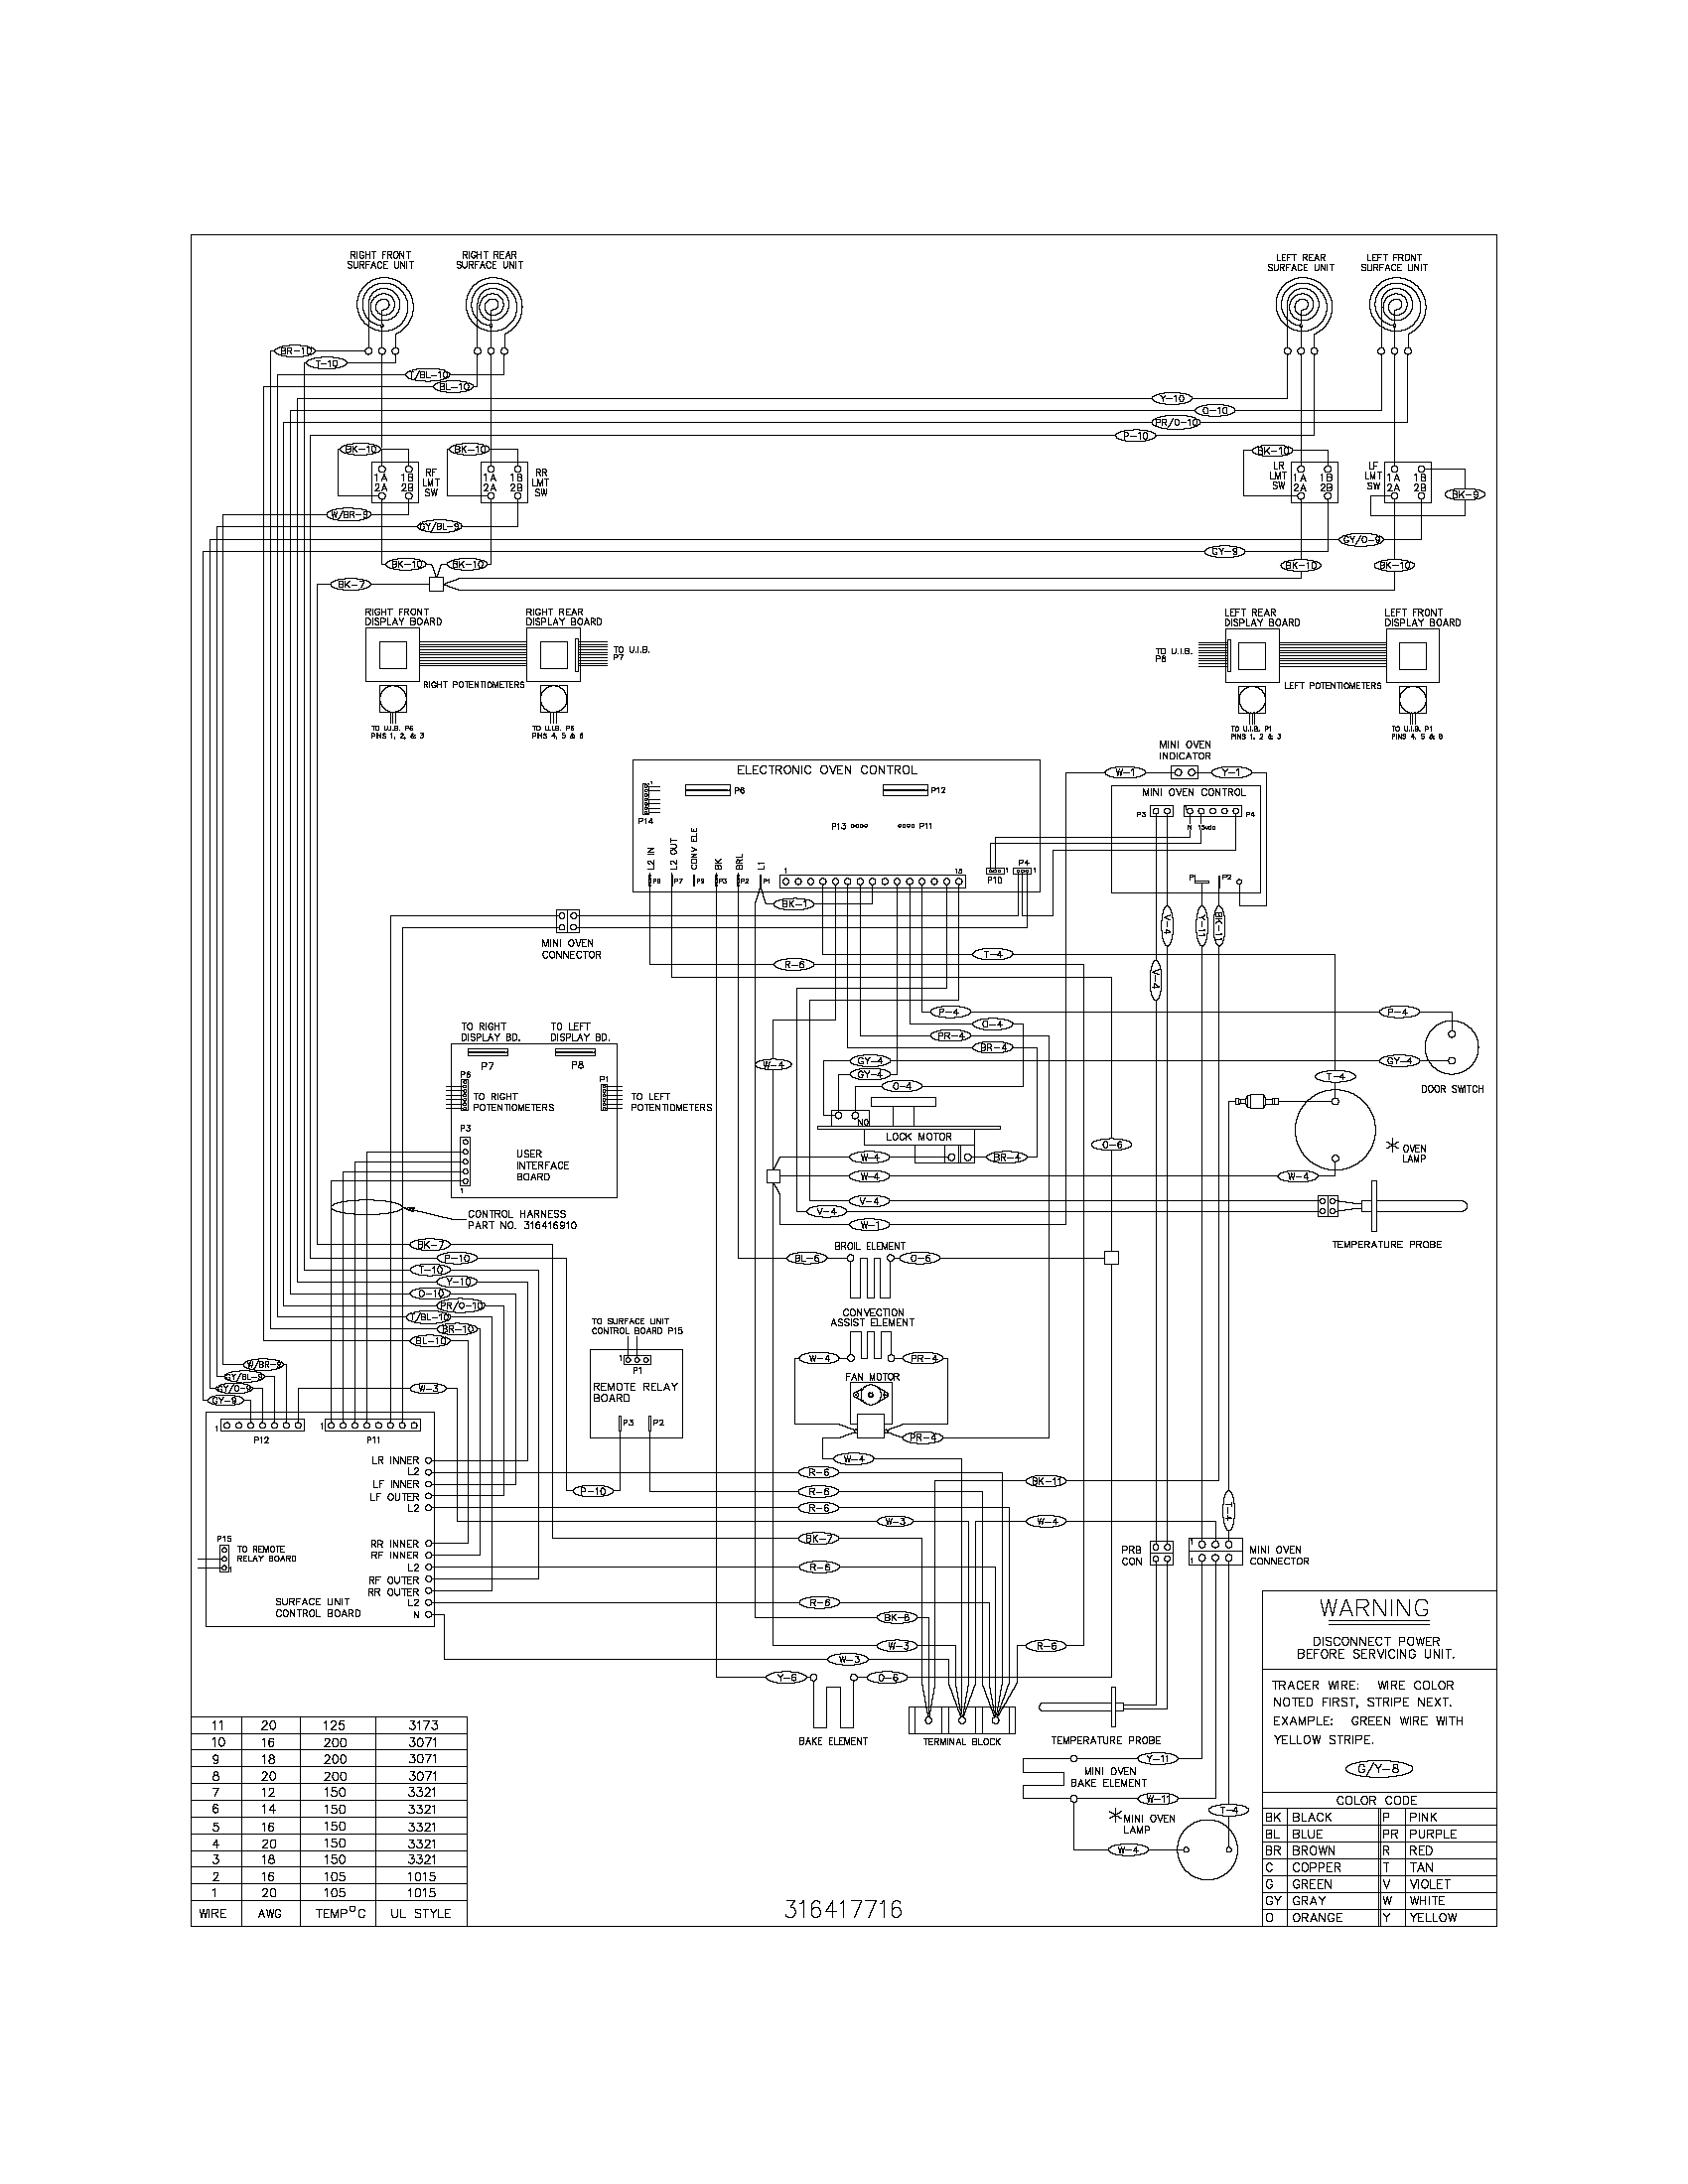 wiring diagram parts odes wiring diagram e z go wiring diagram \u2022 wiring diagrams j oliver 1850 wiring diagram at alyssarenee.co